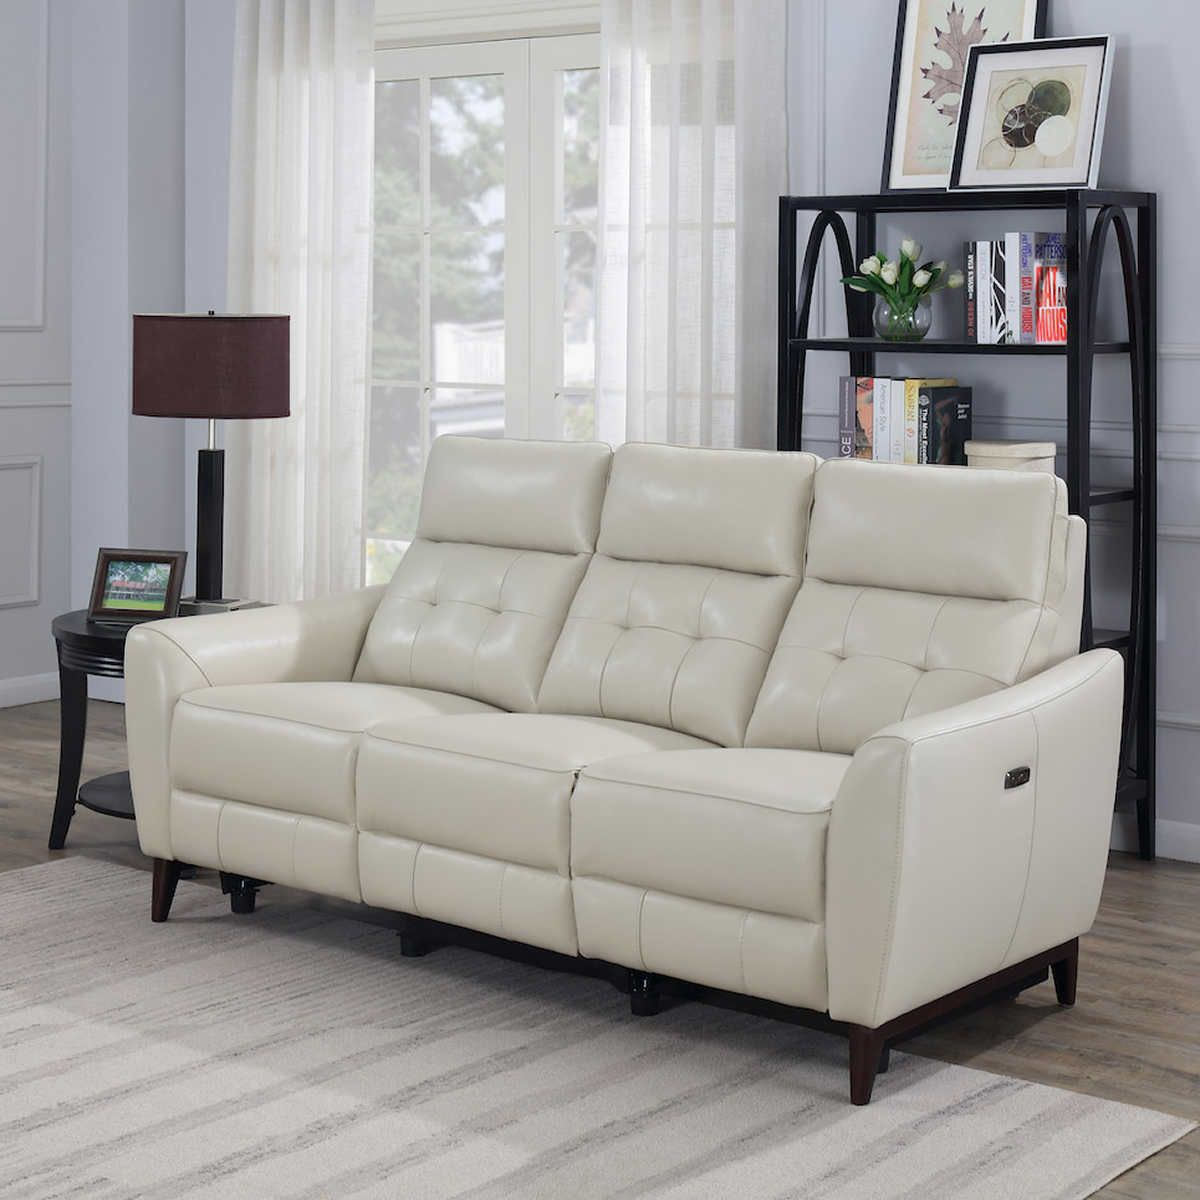 Timmons Leather Power Reclining Sofa With Power Headrest Regarding Nolan Leather Power Reclining Sofas (View 15 of 15)